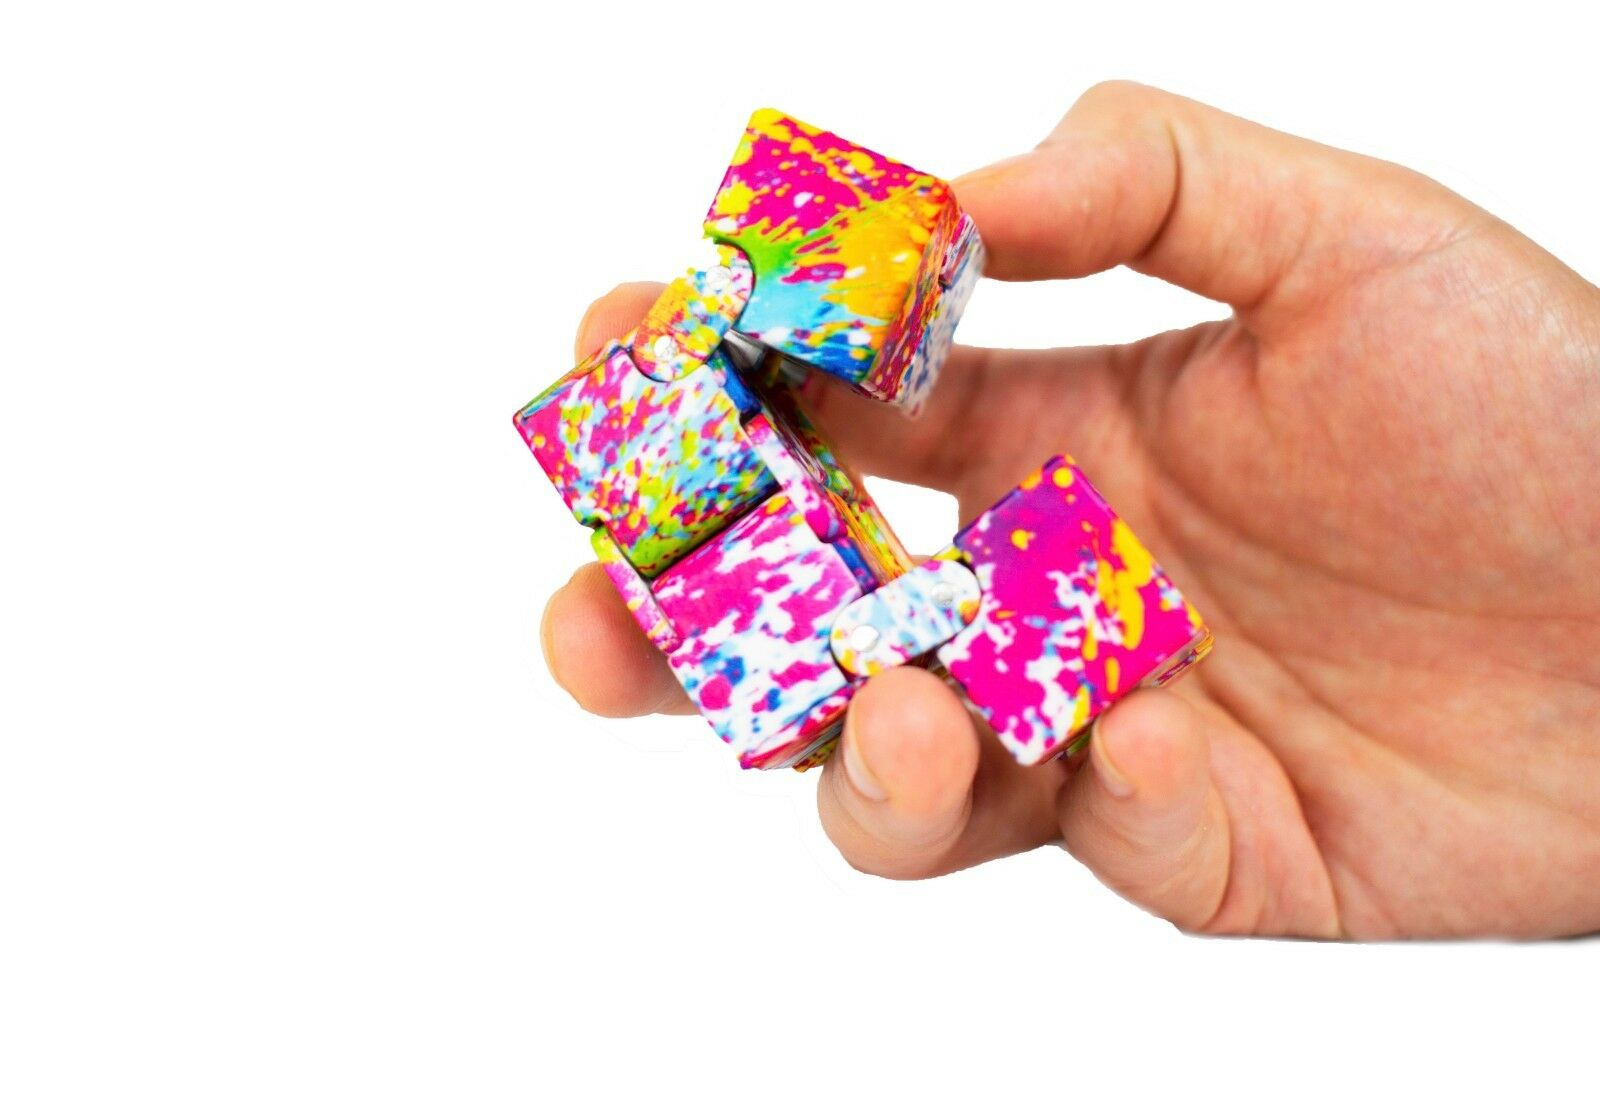 Sensory-Infinity-Cube-Stress-Fidget-Toys-for-Autism-Anxiety-Relief-Kids-Adult-UK thumbnail 12